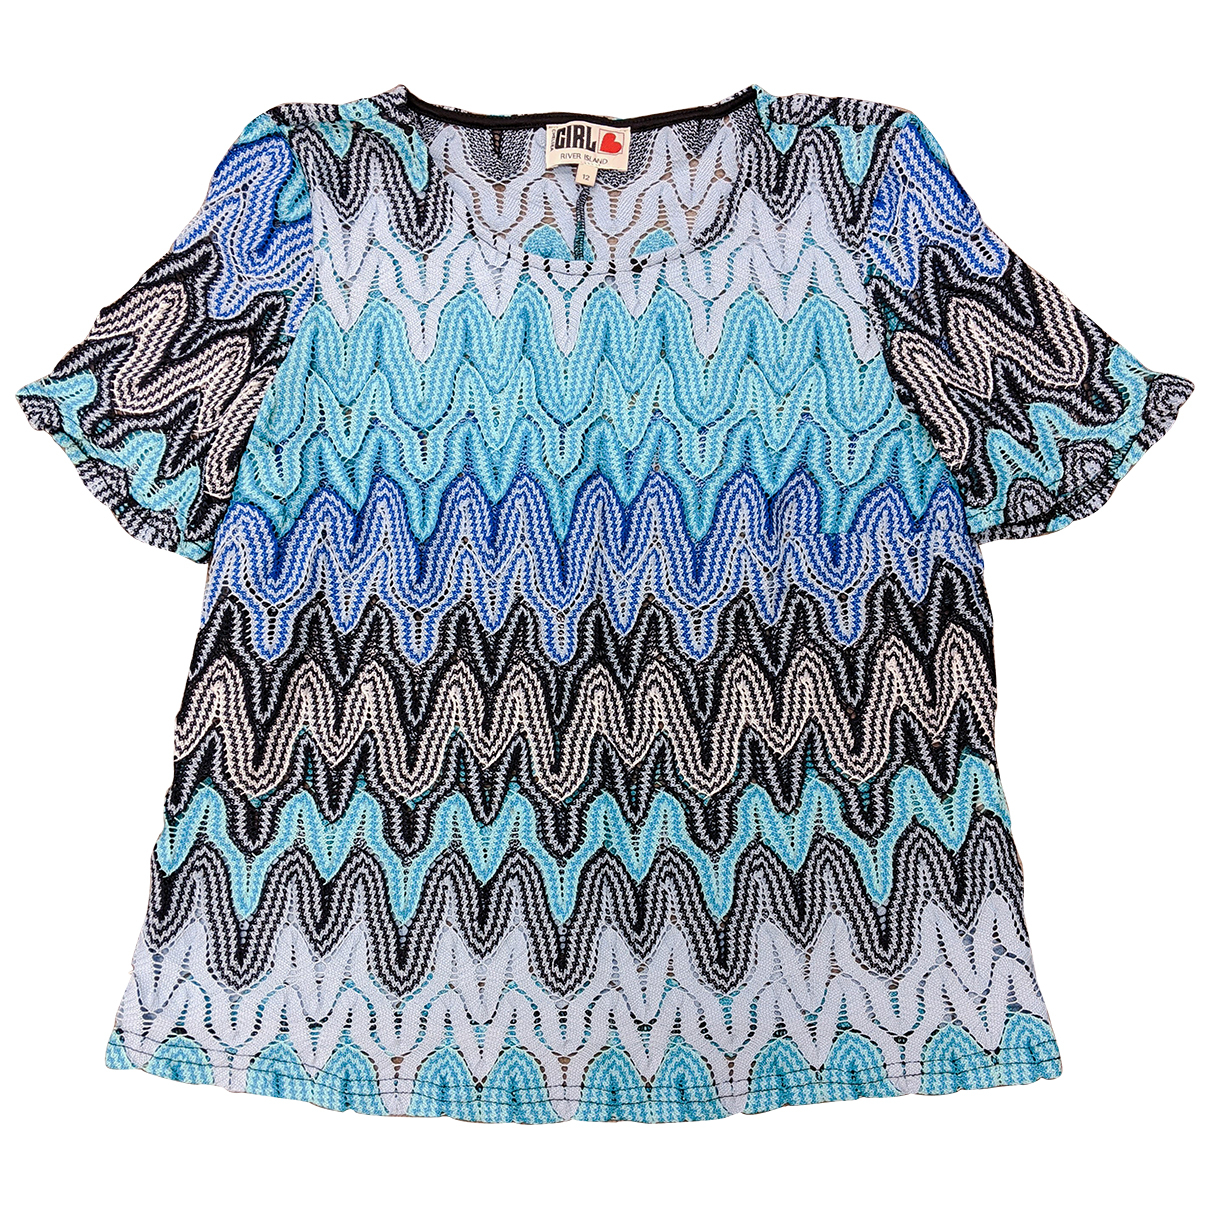 River Island N Multicolour  top for Women 12 UK